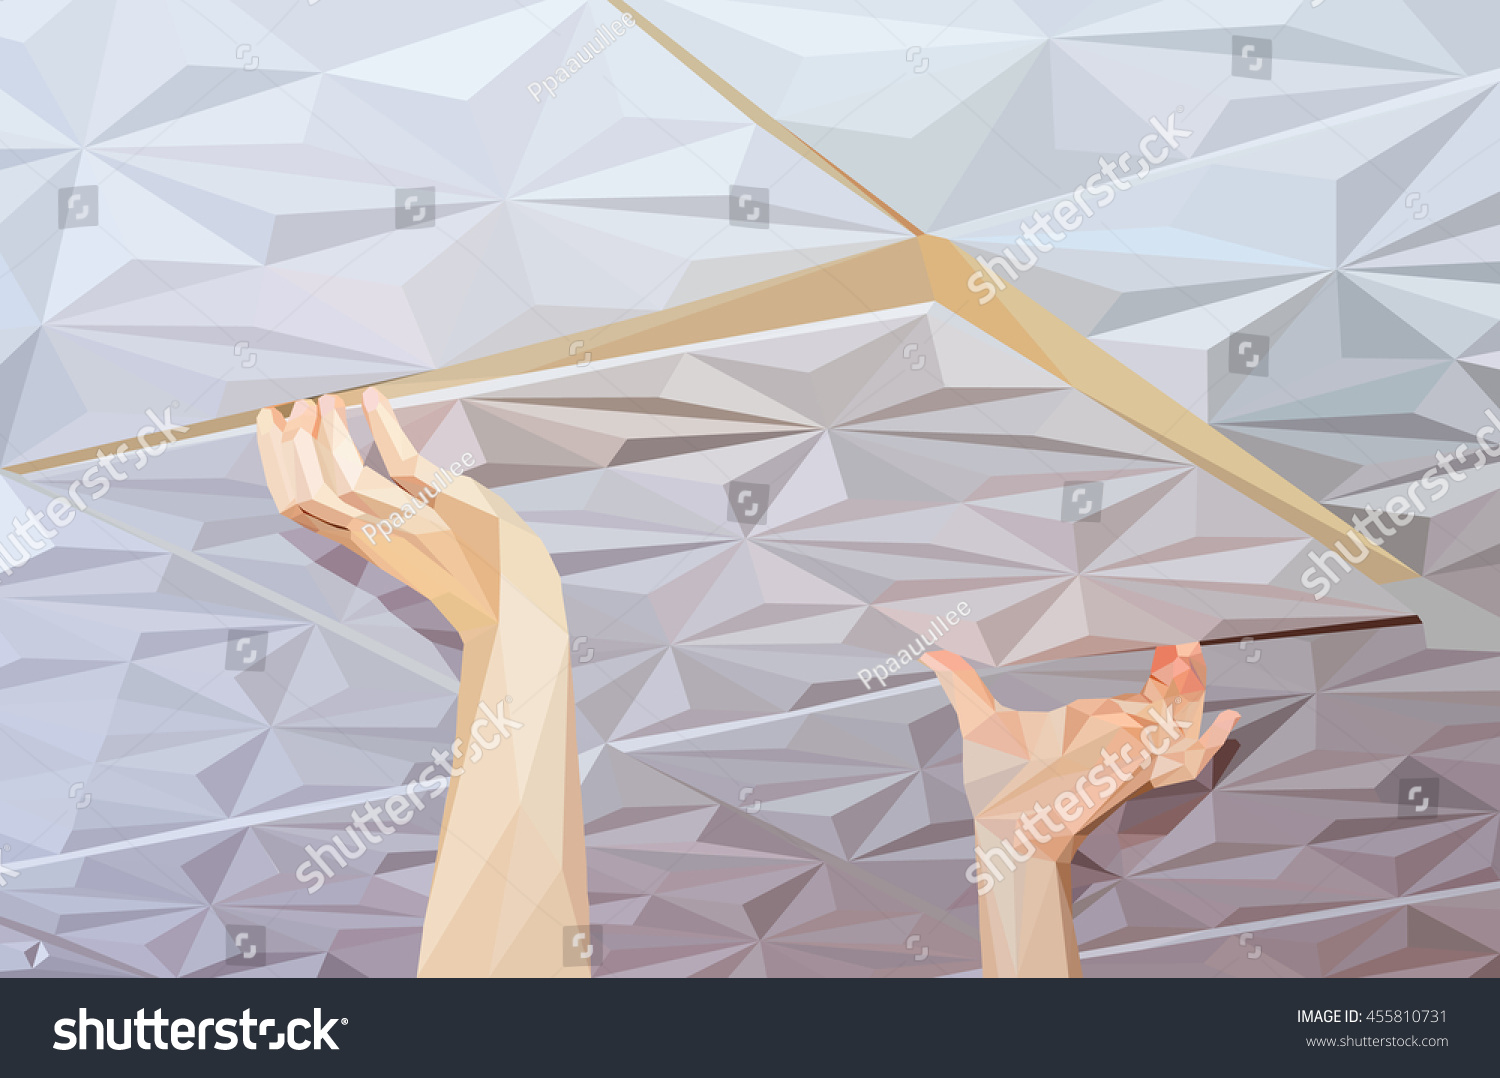 Installation ceiling tiles made polystyrene stock vector hd royalty installation of ceiling tiles made of polystyrene dailygadgetfo Gallery